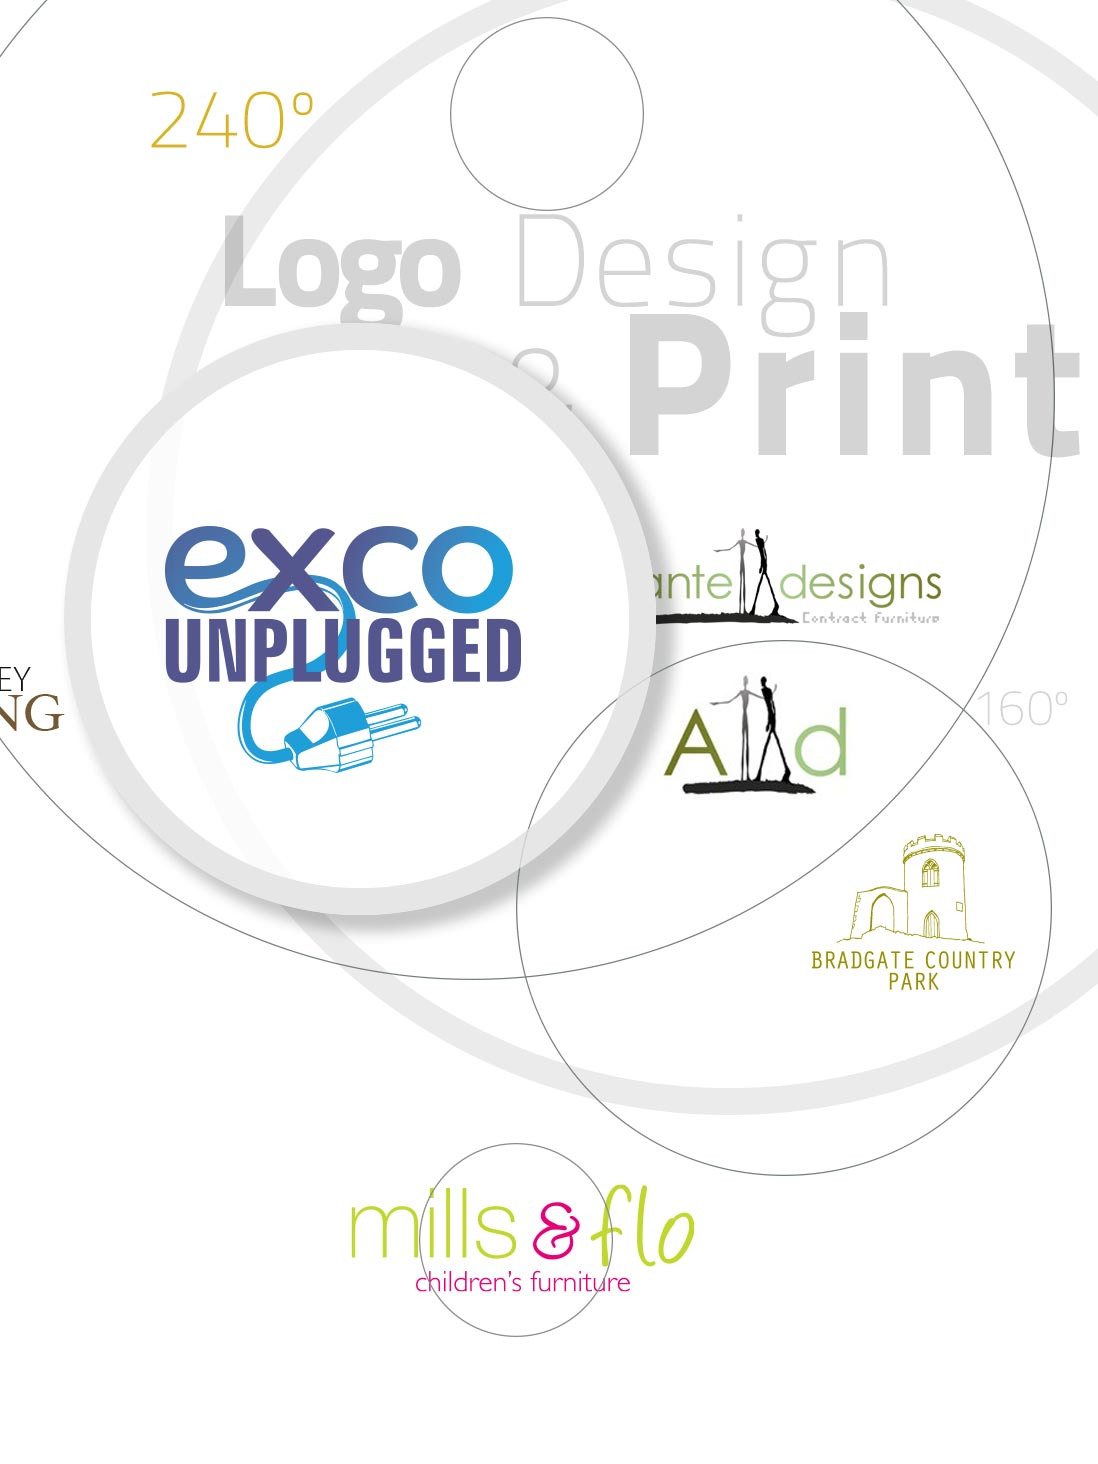 Print and logo production